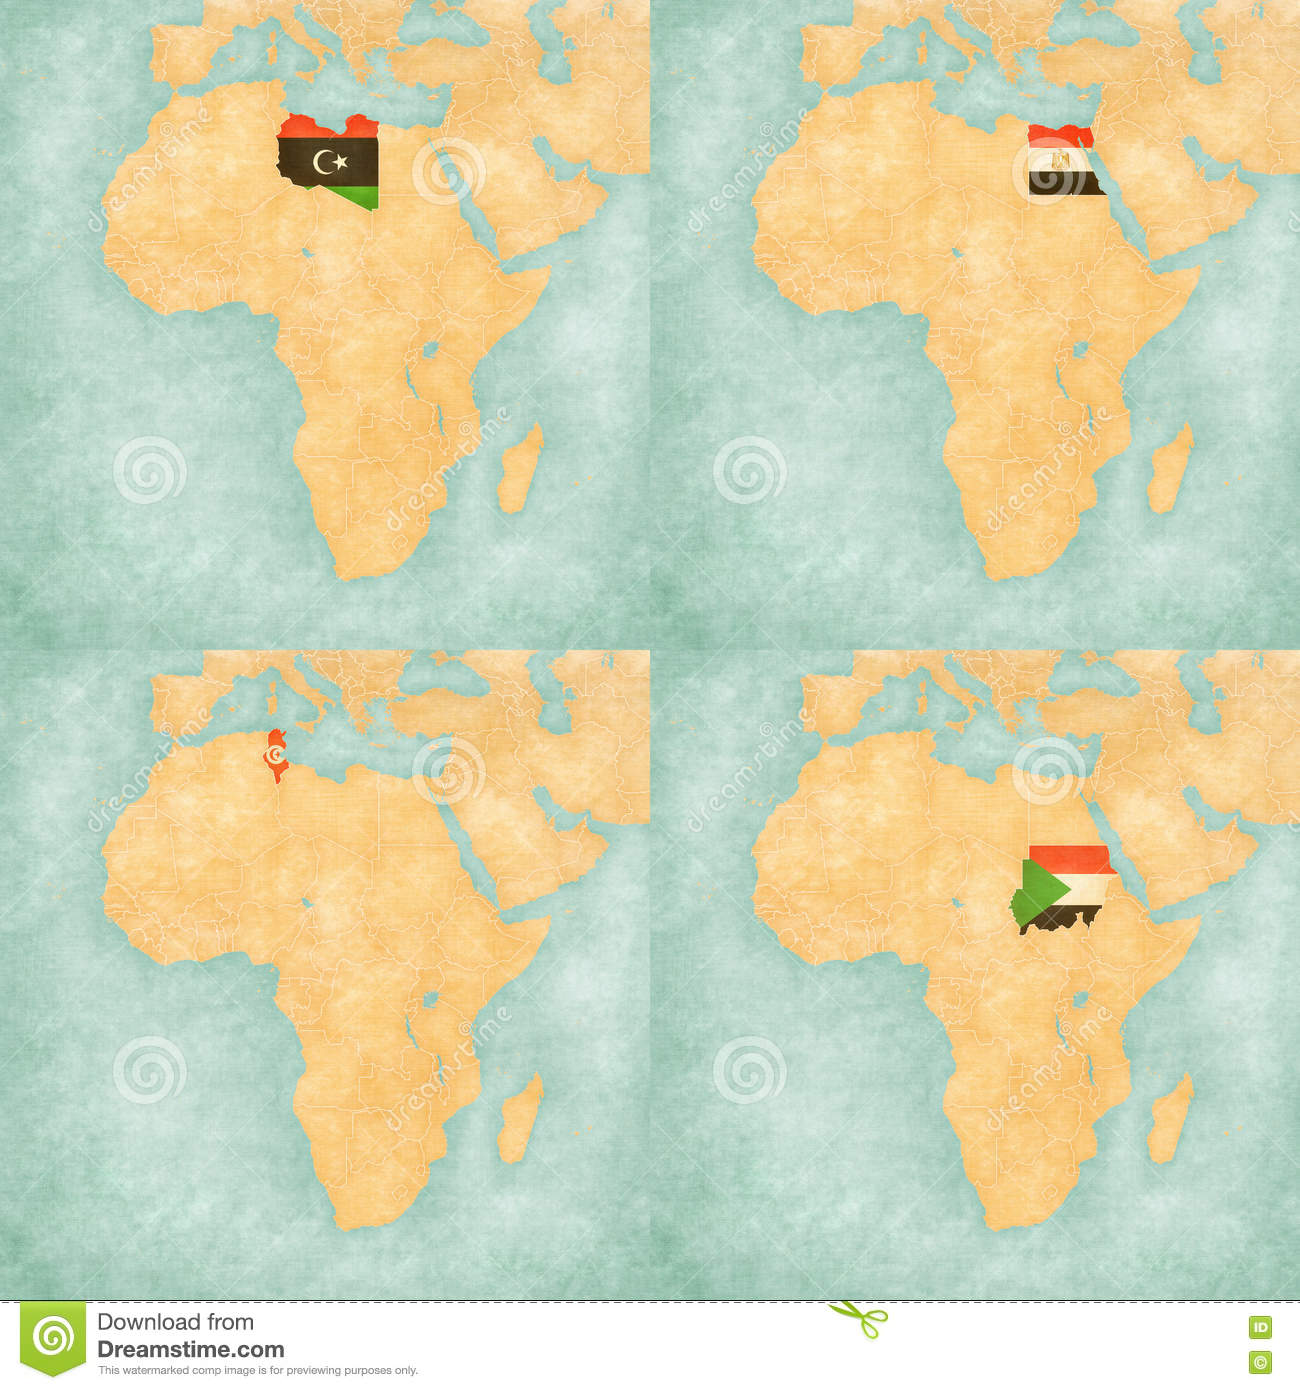 Map of africa libya egypt tunisia and sudan stock illustration download map of africa libya egypt tunisia and sudan stock illustration illustration gumiabroncs Image collections